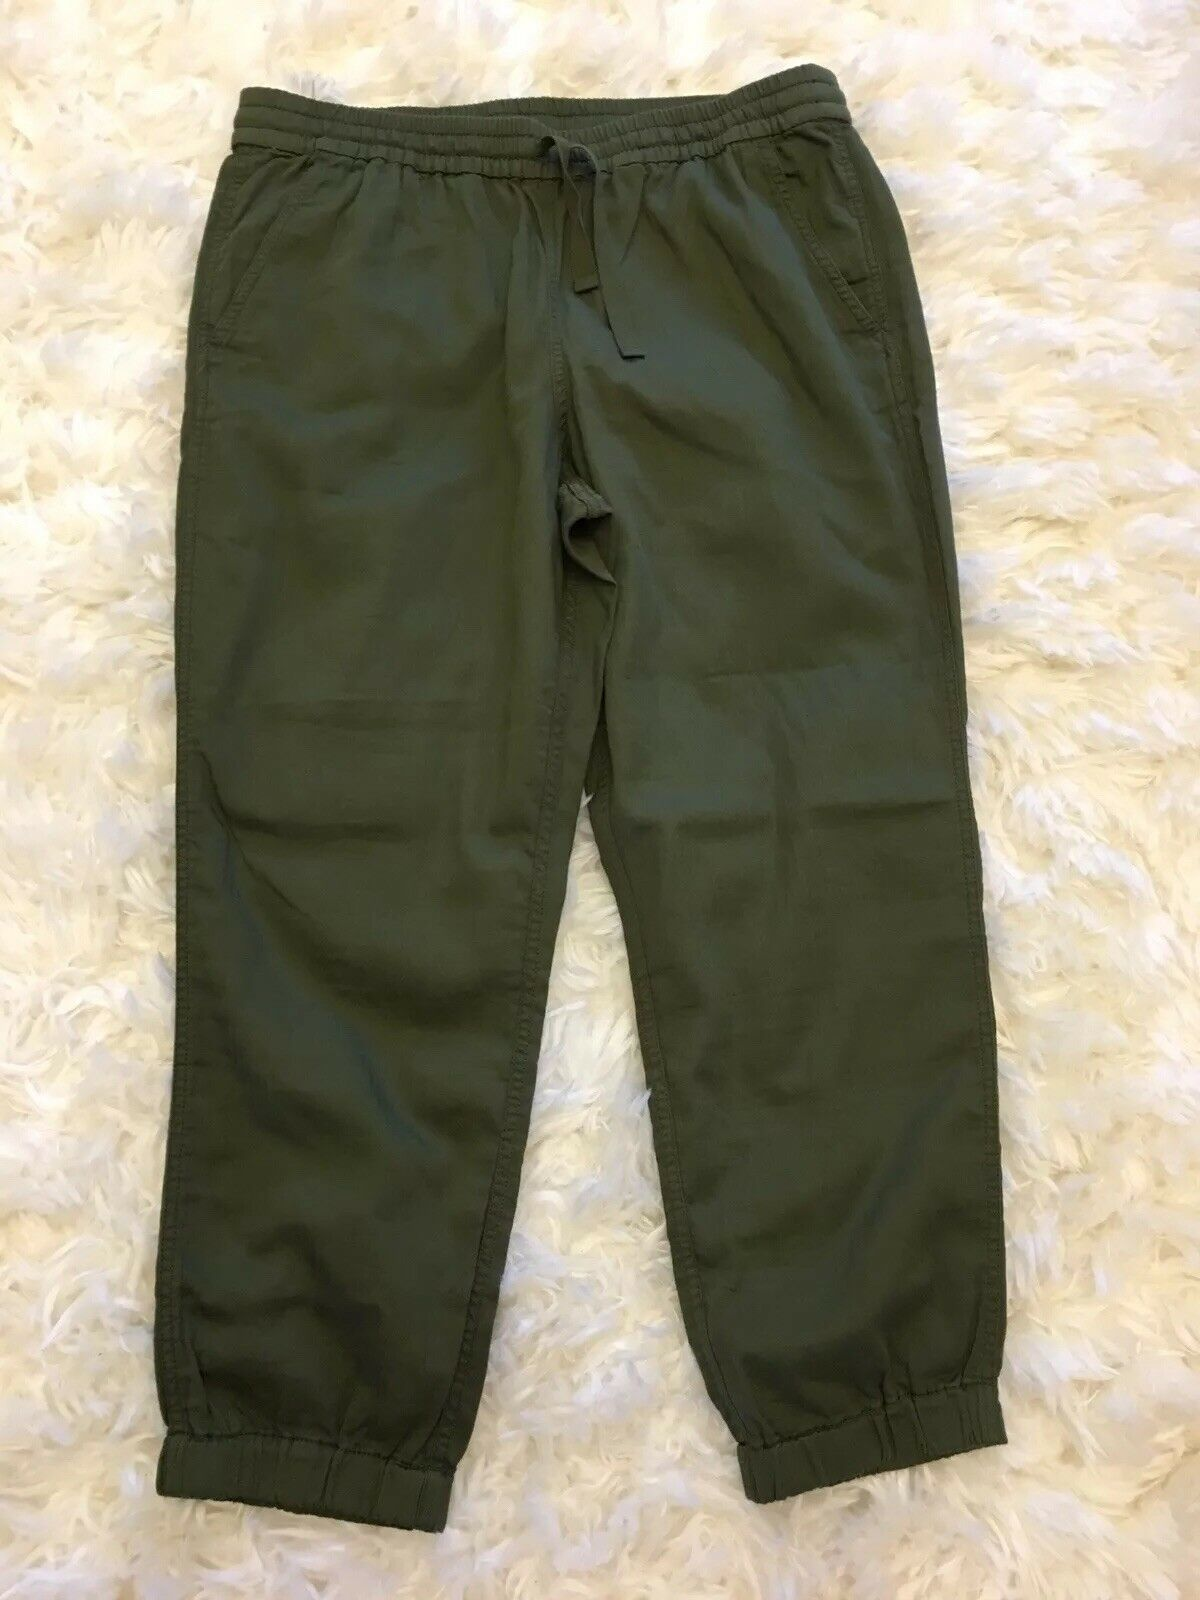 New J Crew Point Sur Seaside Pant in Cotton Twill Deep Moss Sz 12 H7729